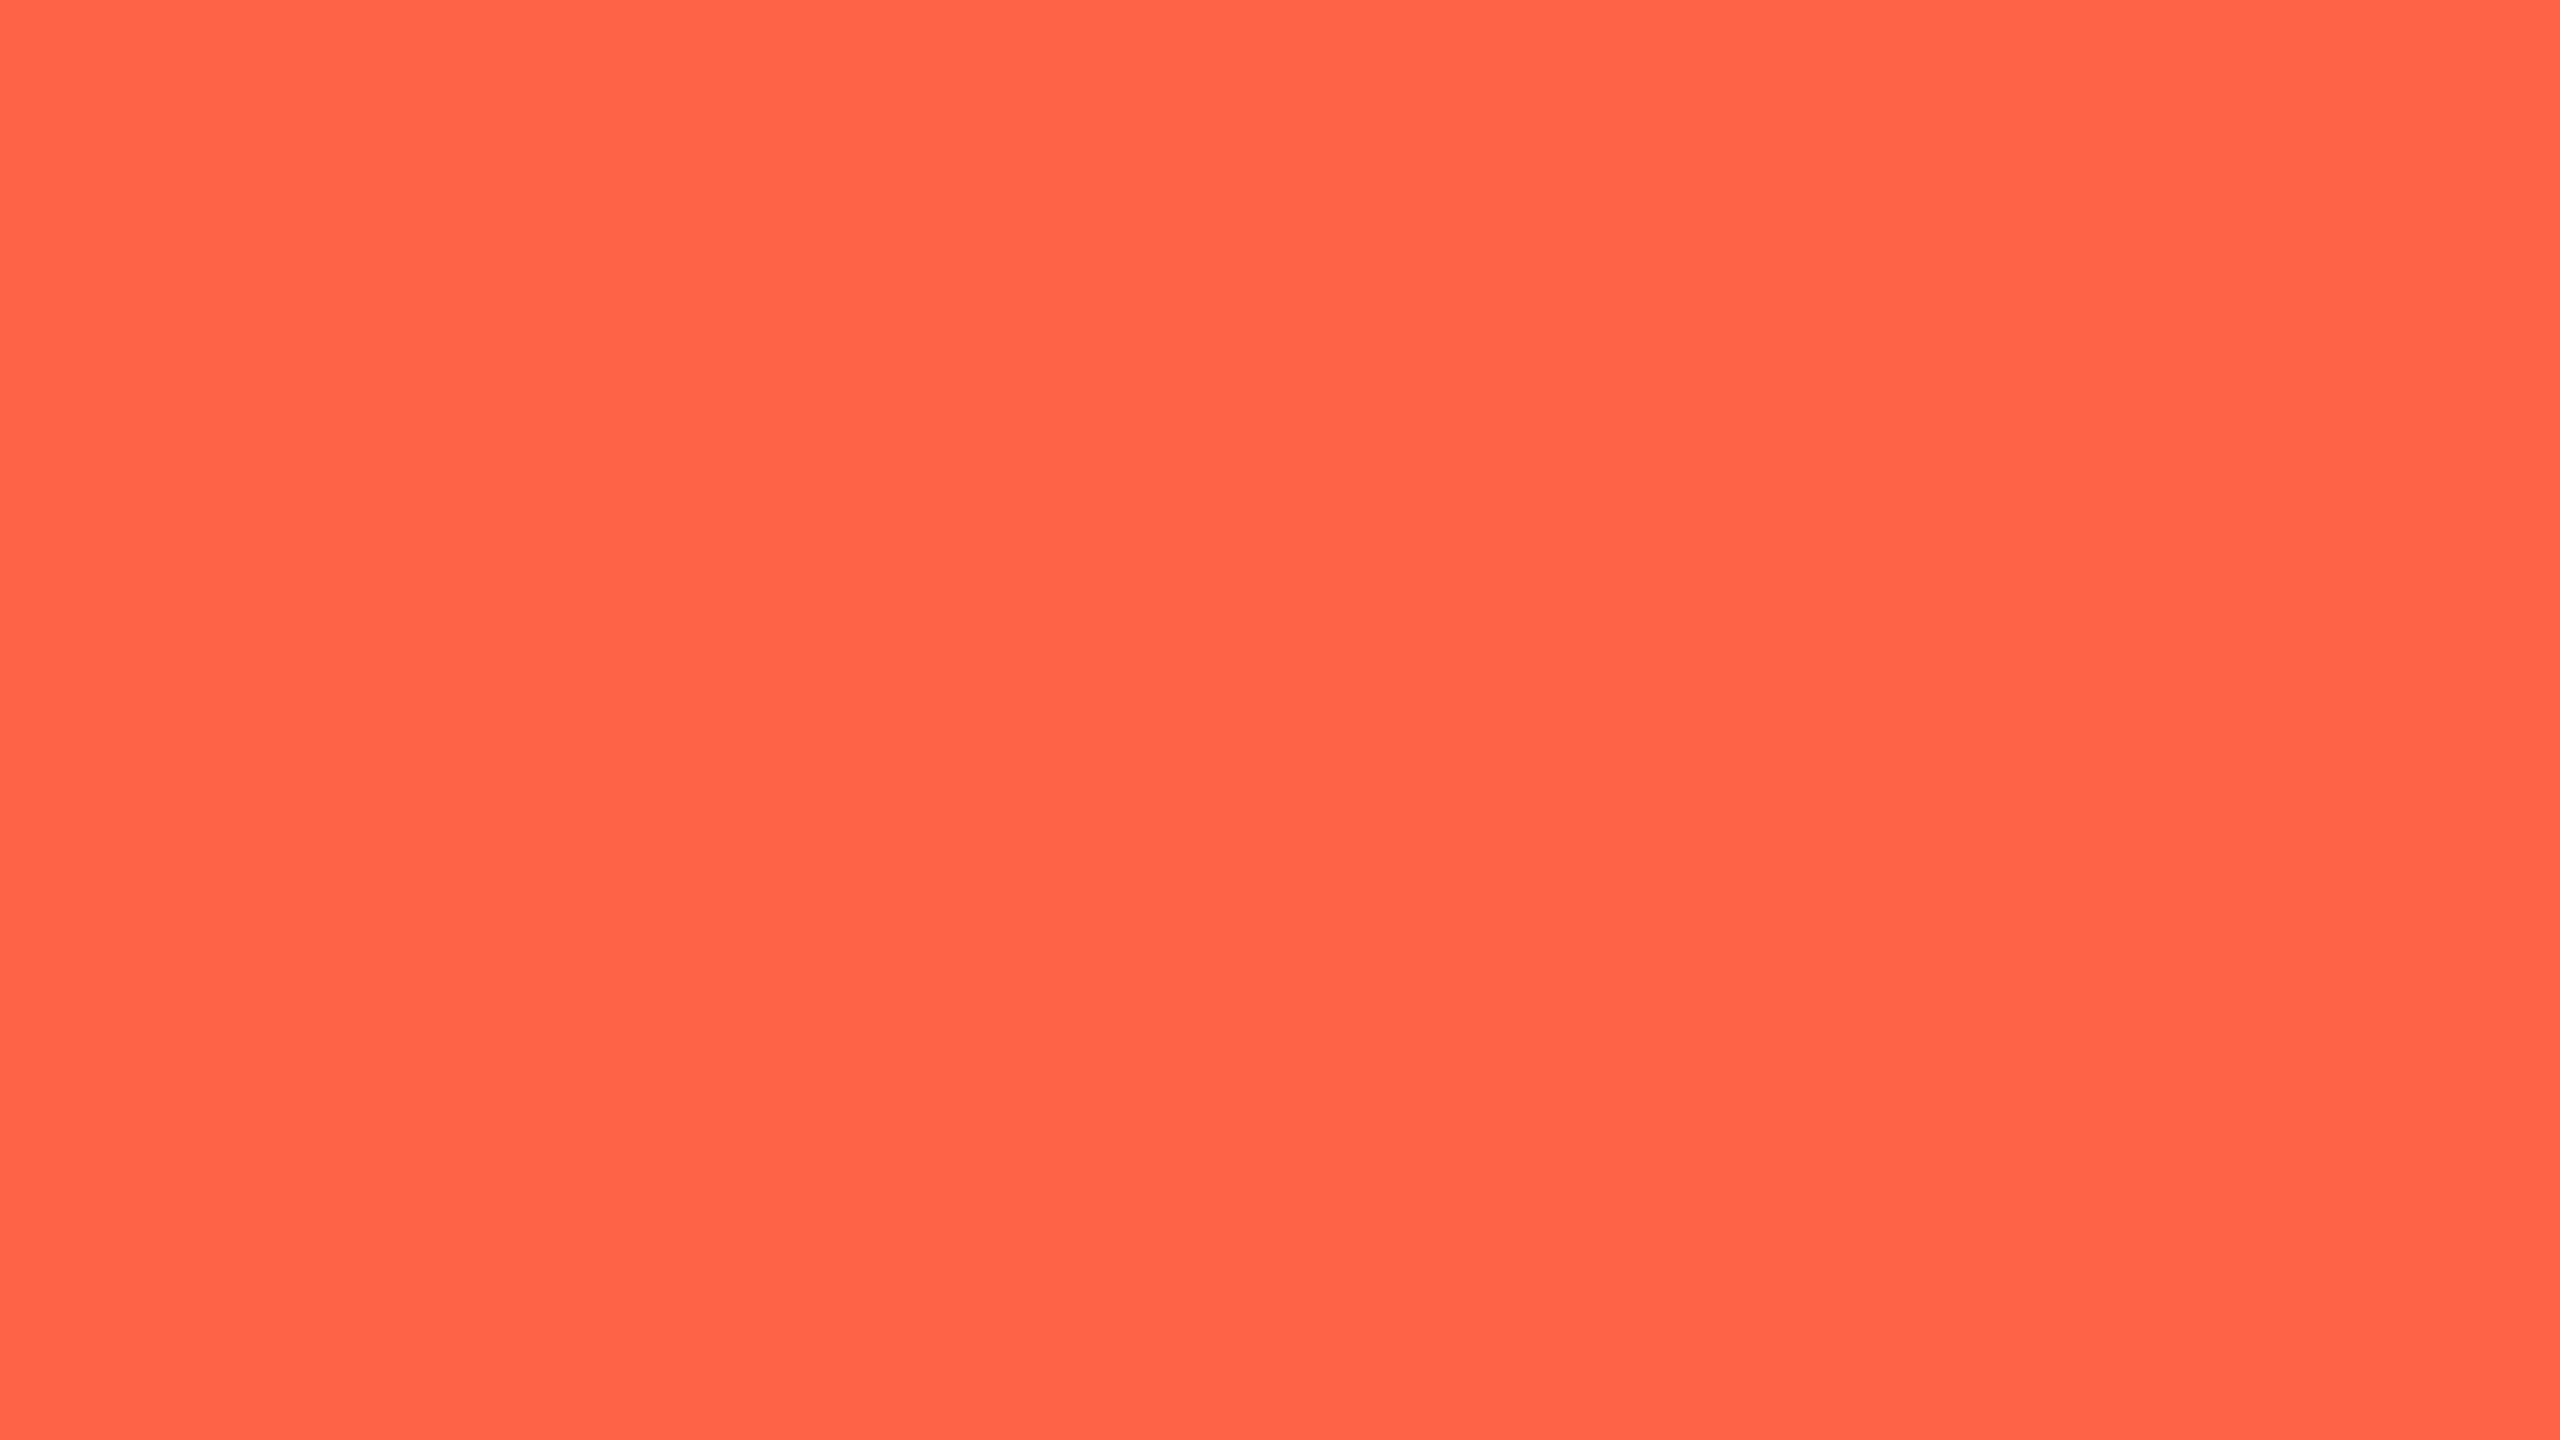 2560x1440 Tomato Solid Color Background